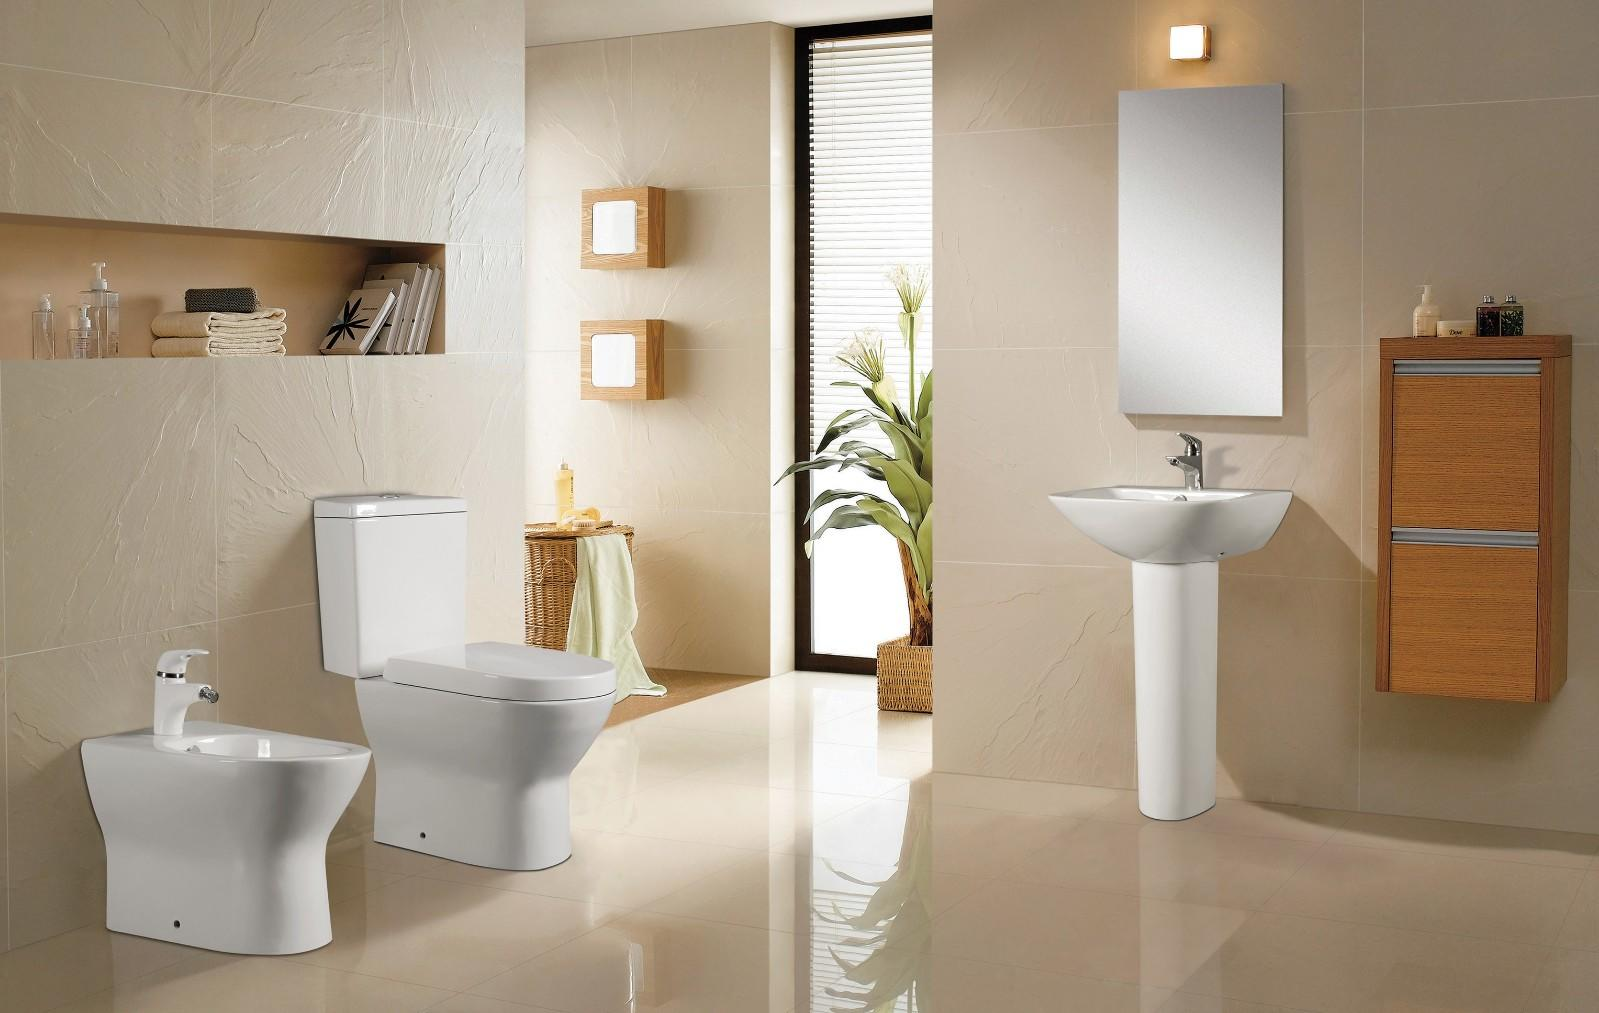 KEDIBO clear style two piece toilet supplier for public washroom